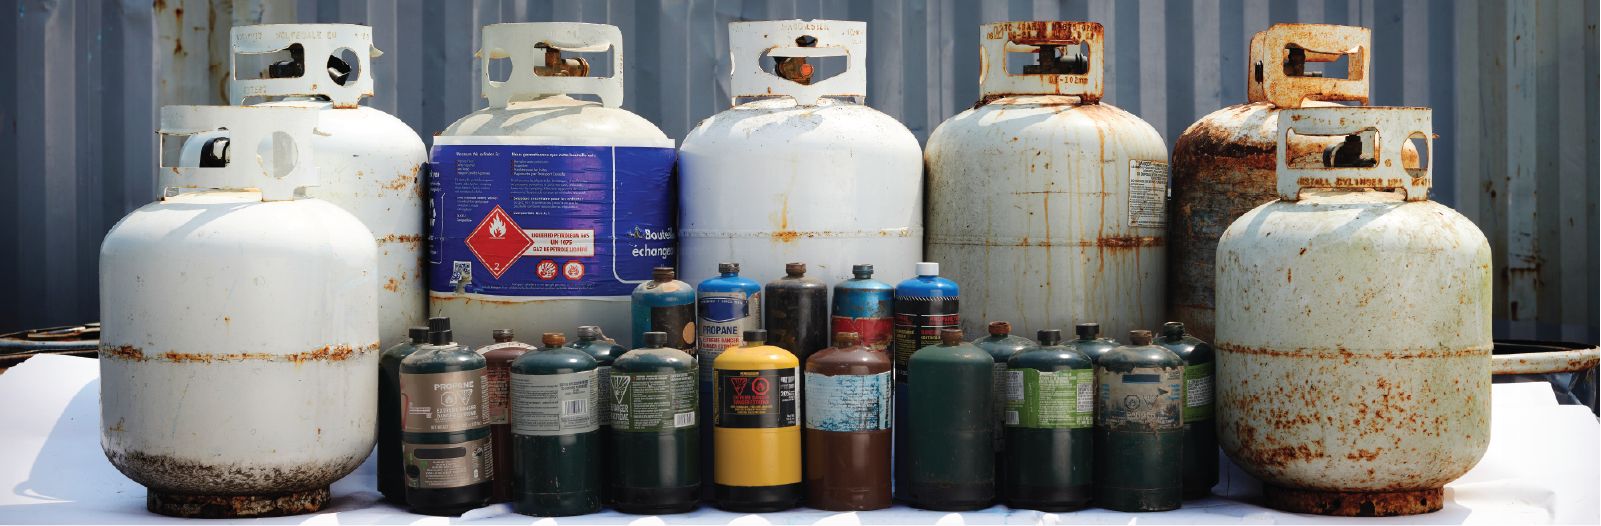 pressurized containers